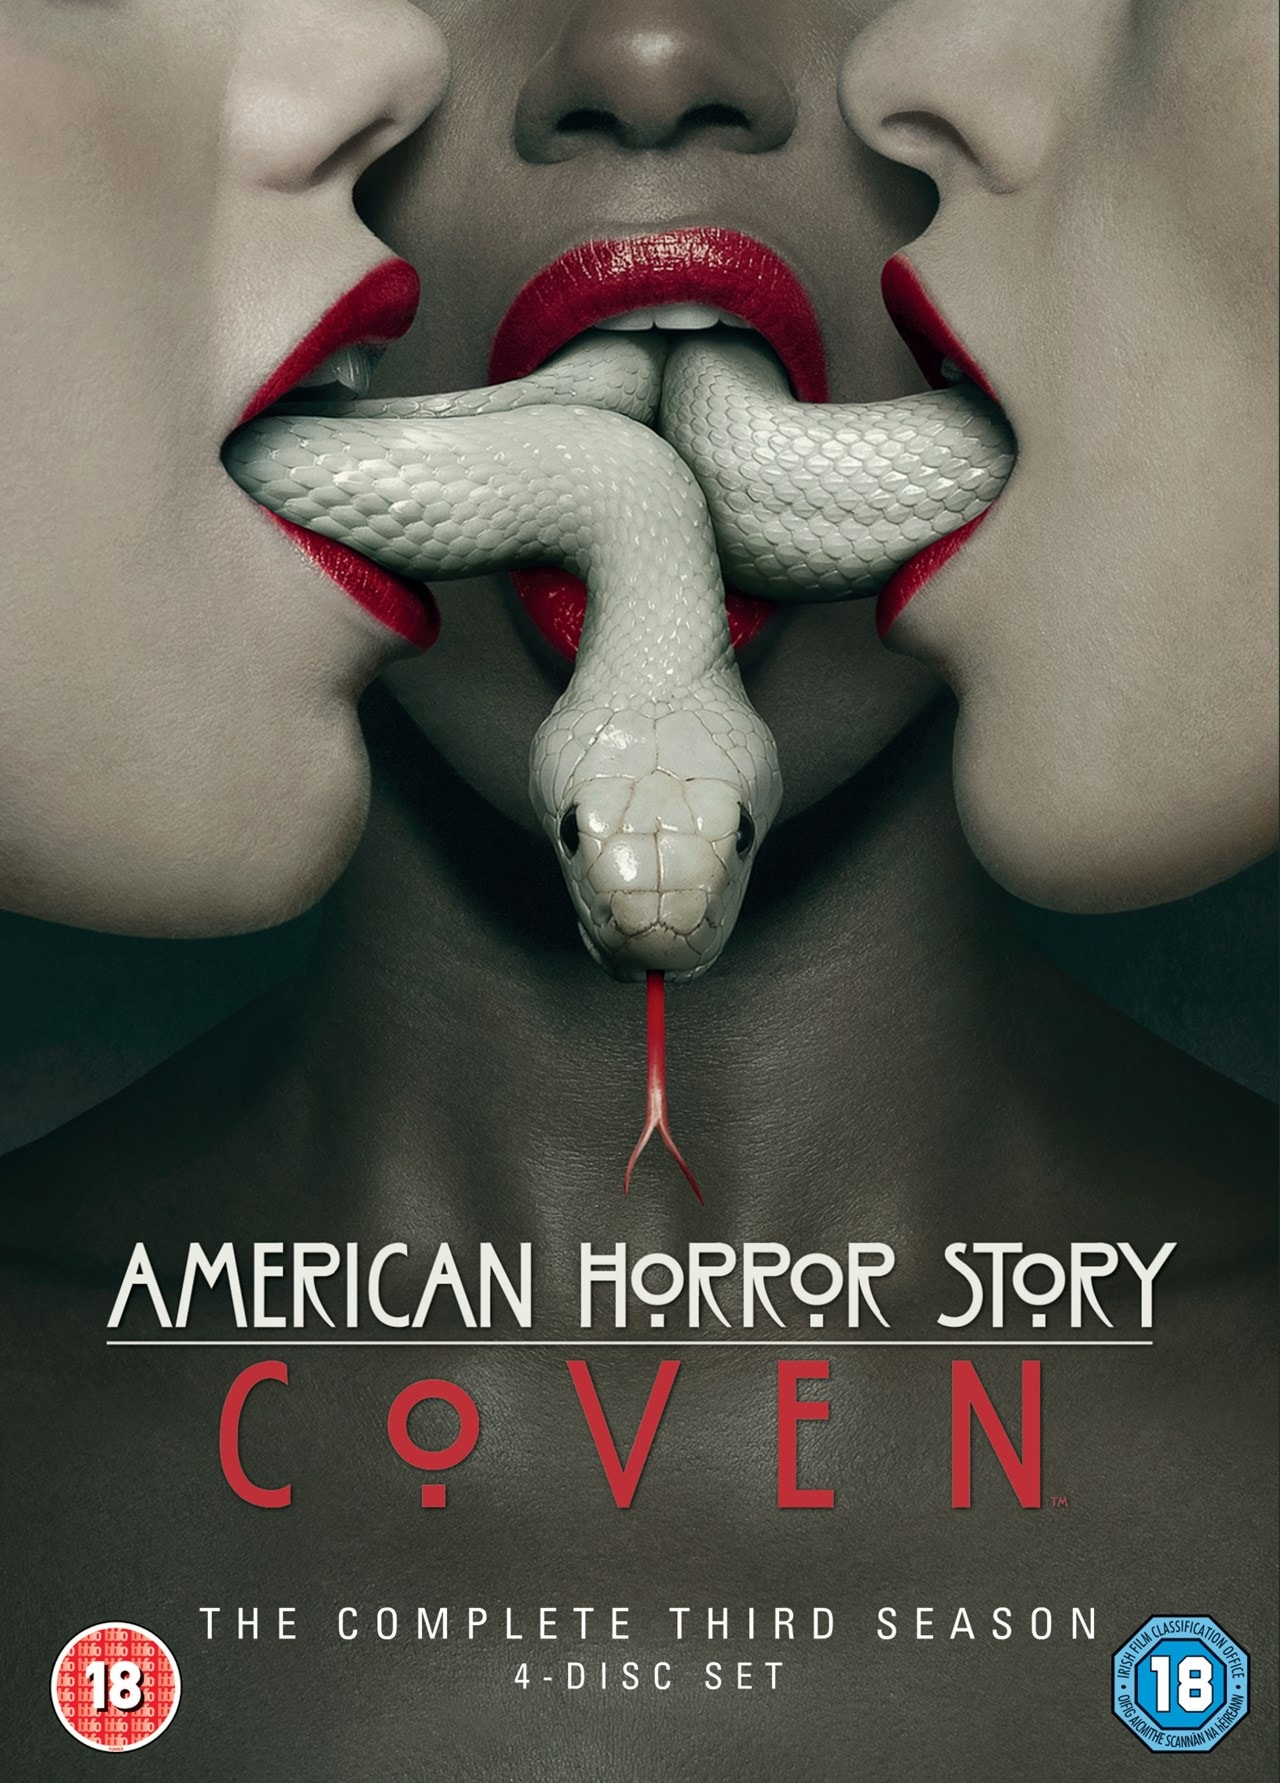 American Horror Story: Coven - The Complete Third Season - 1